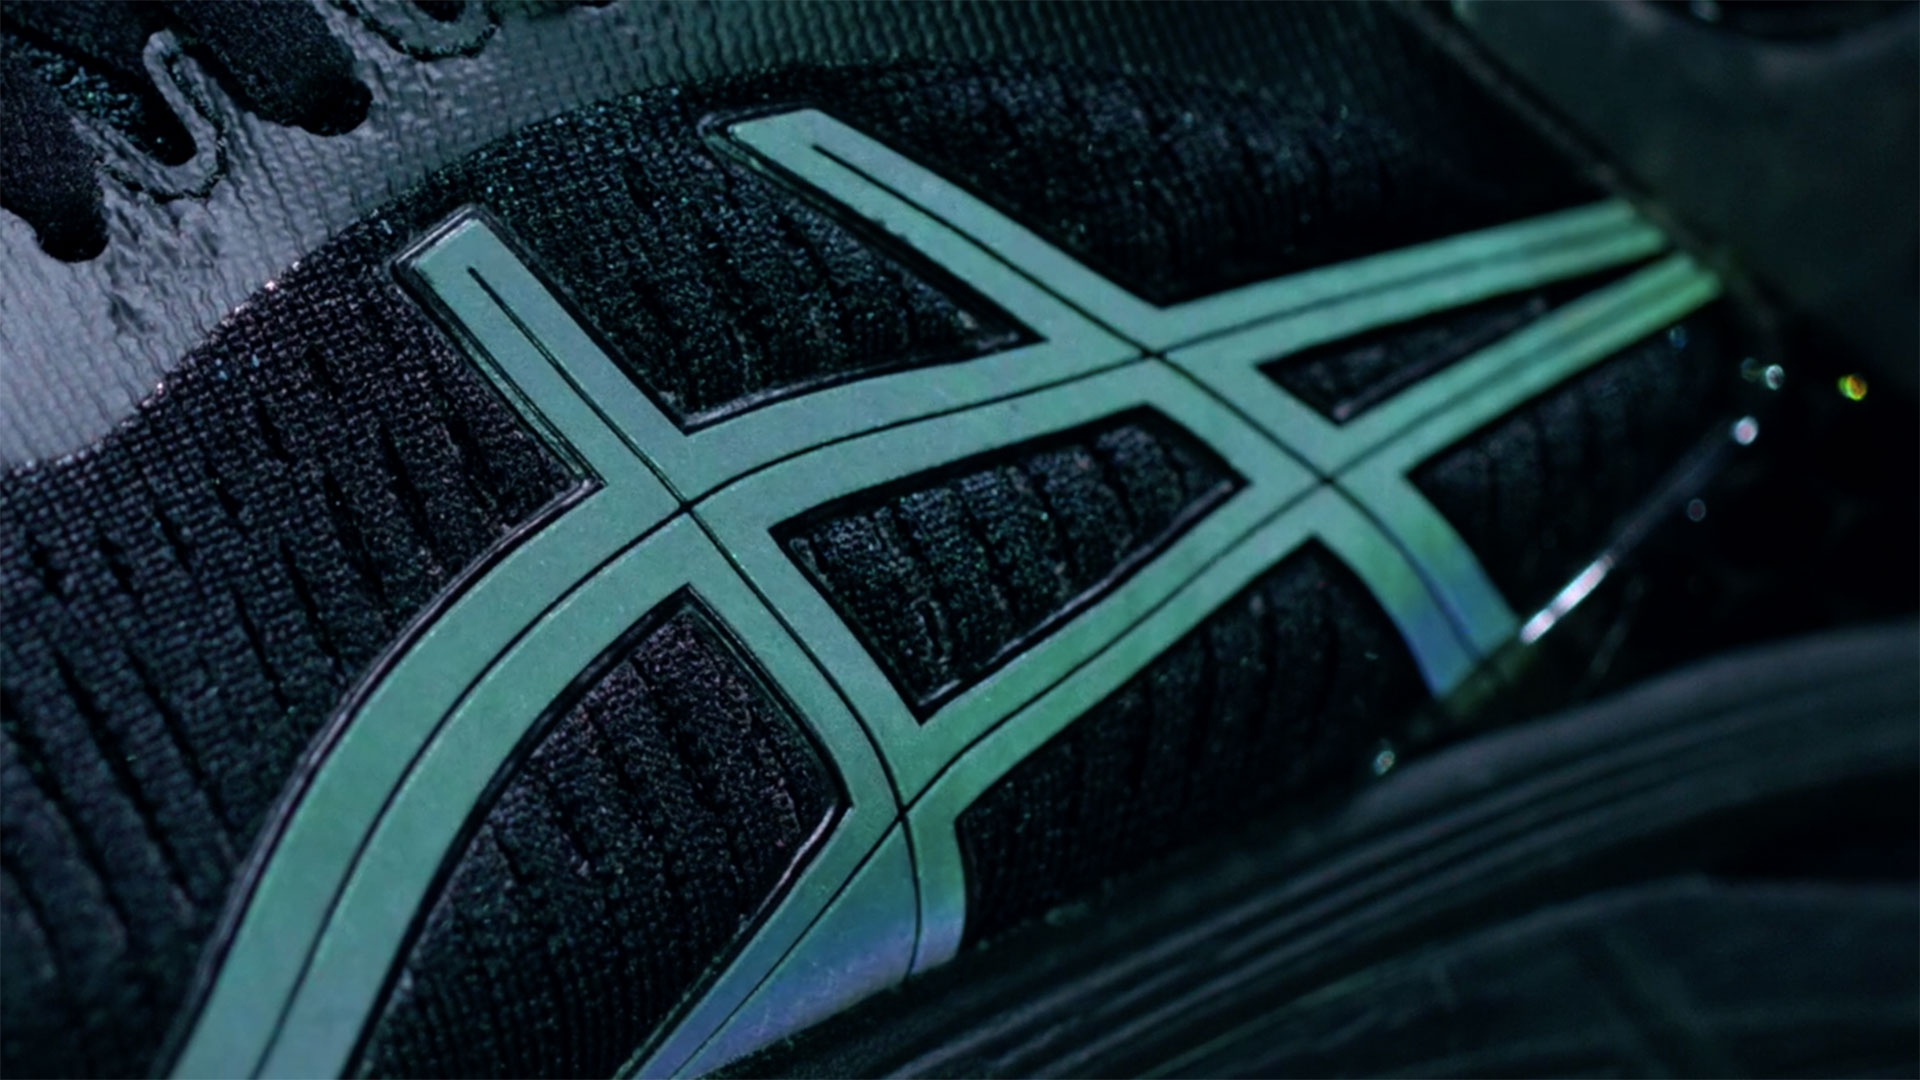 ASICS logo in reflective Lite-show technology